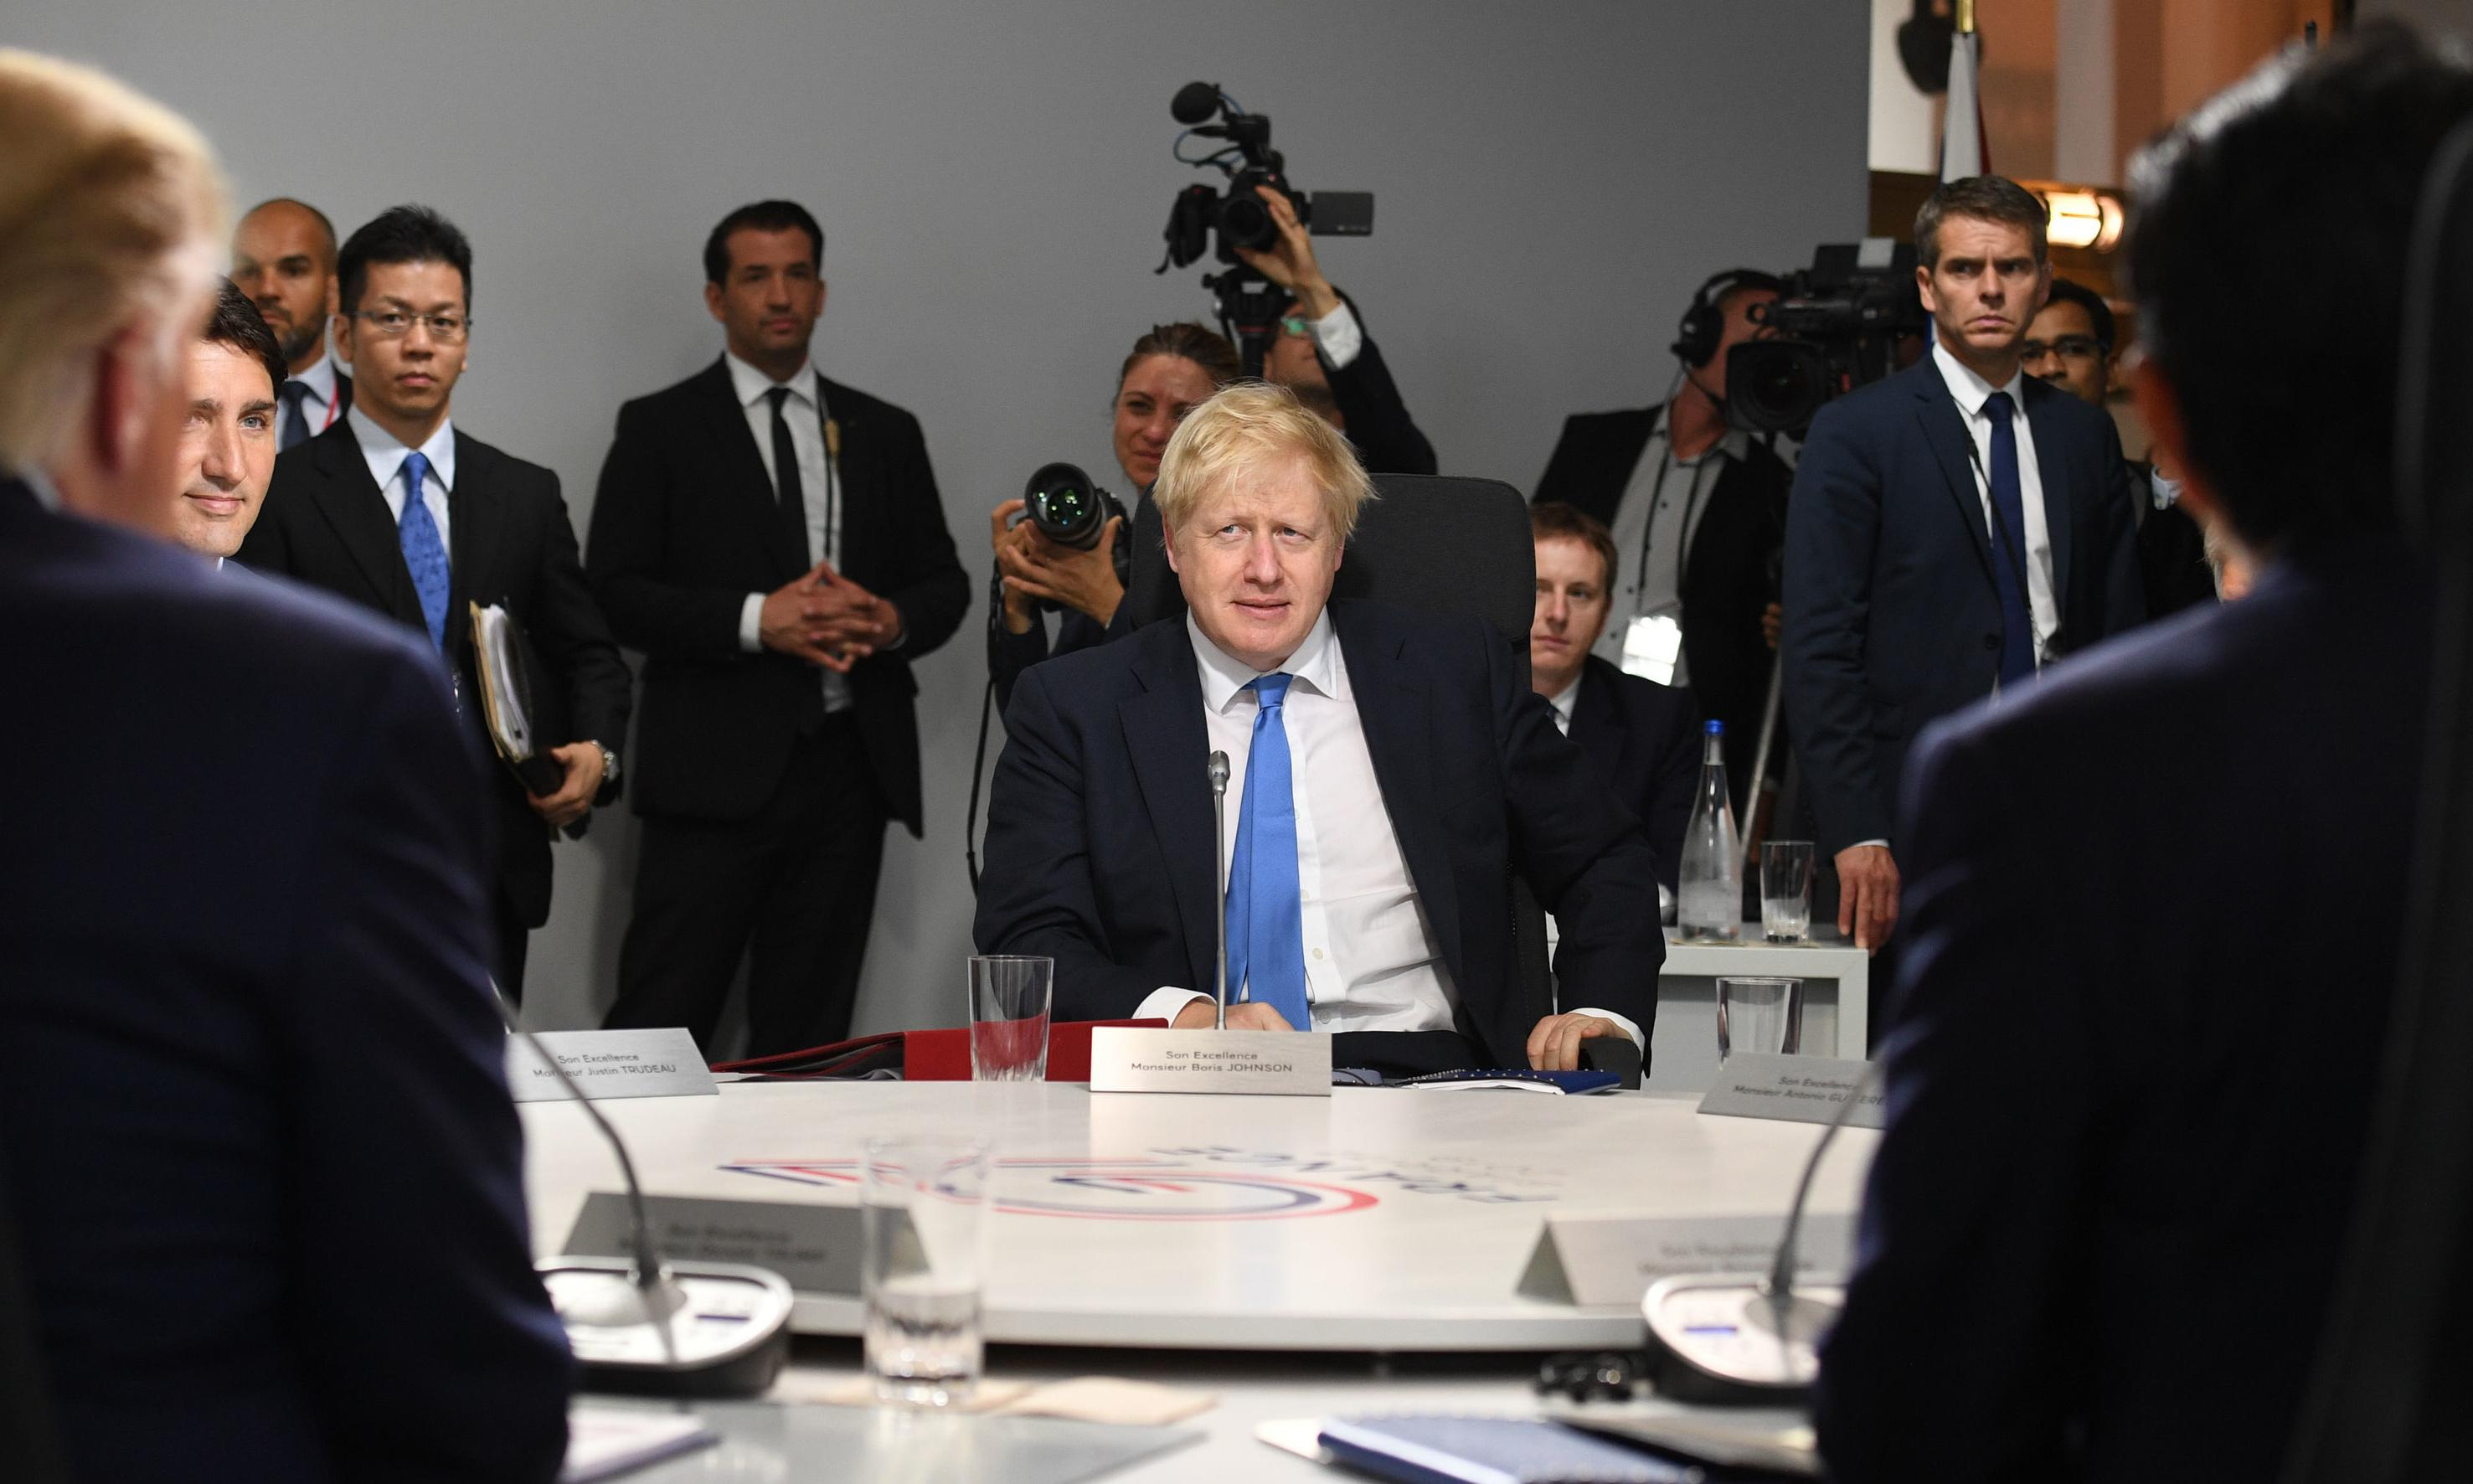 You don't get to decide whether Brexit happens, Johnson tells MPs